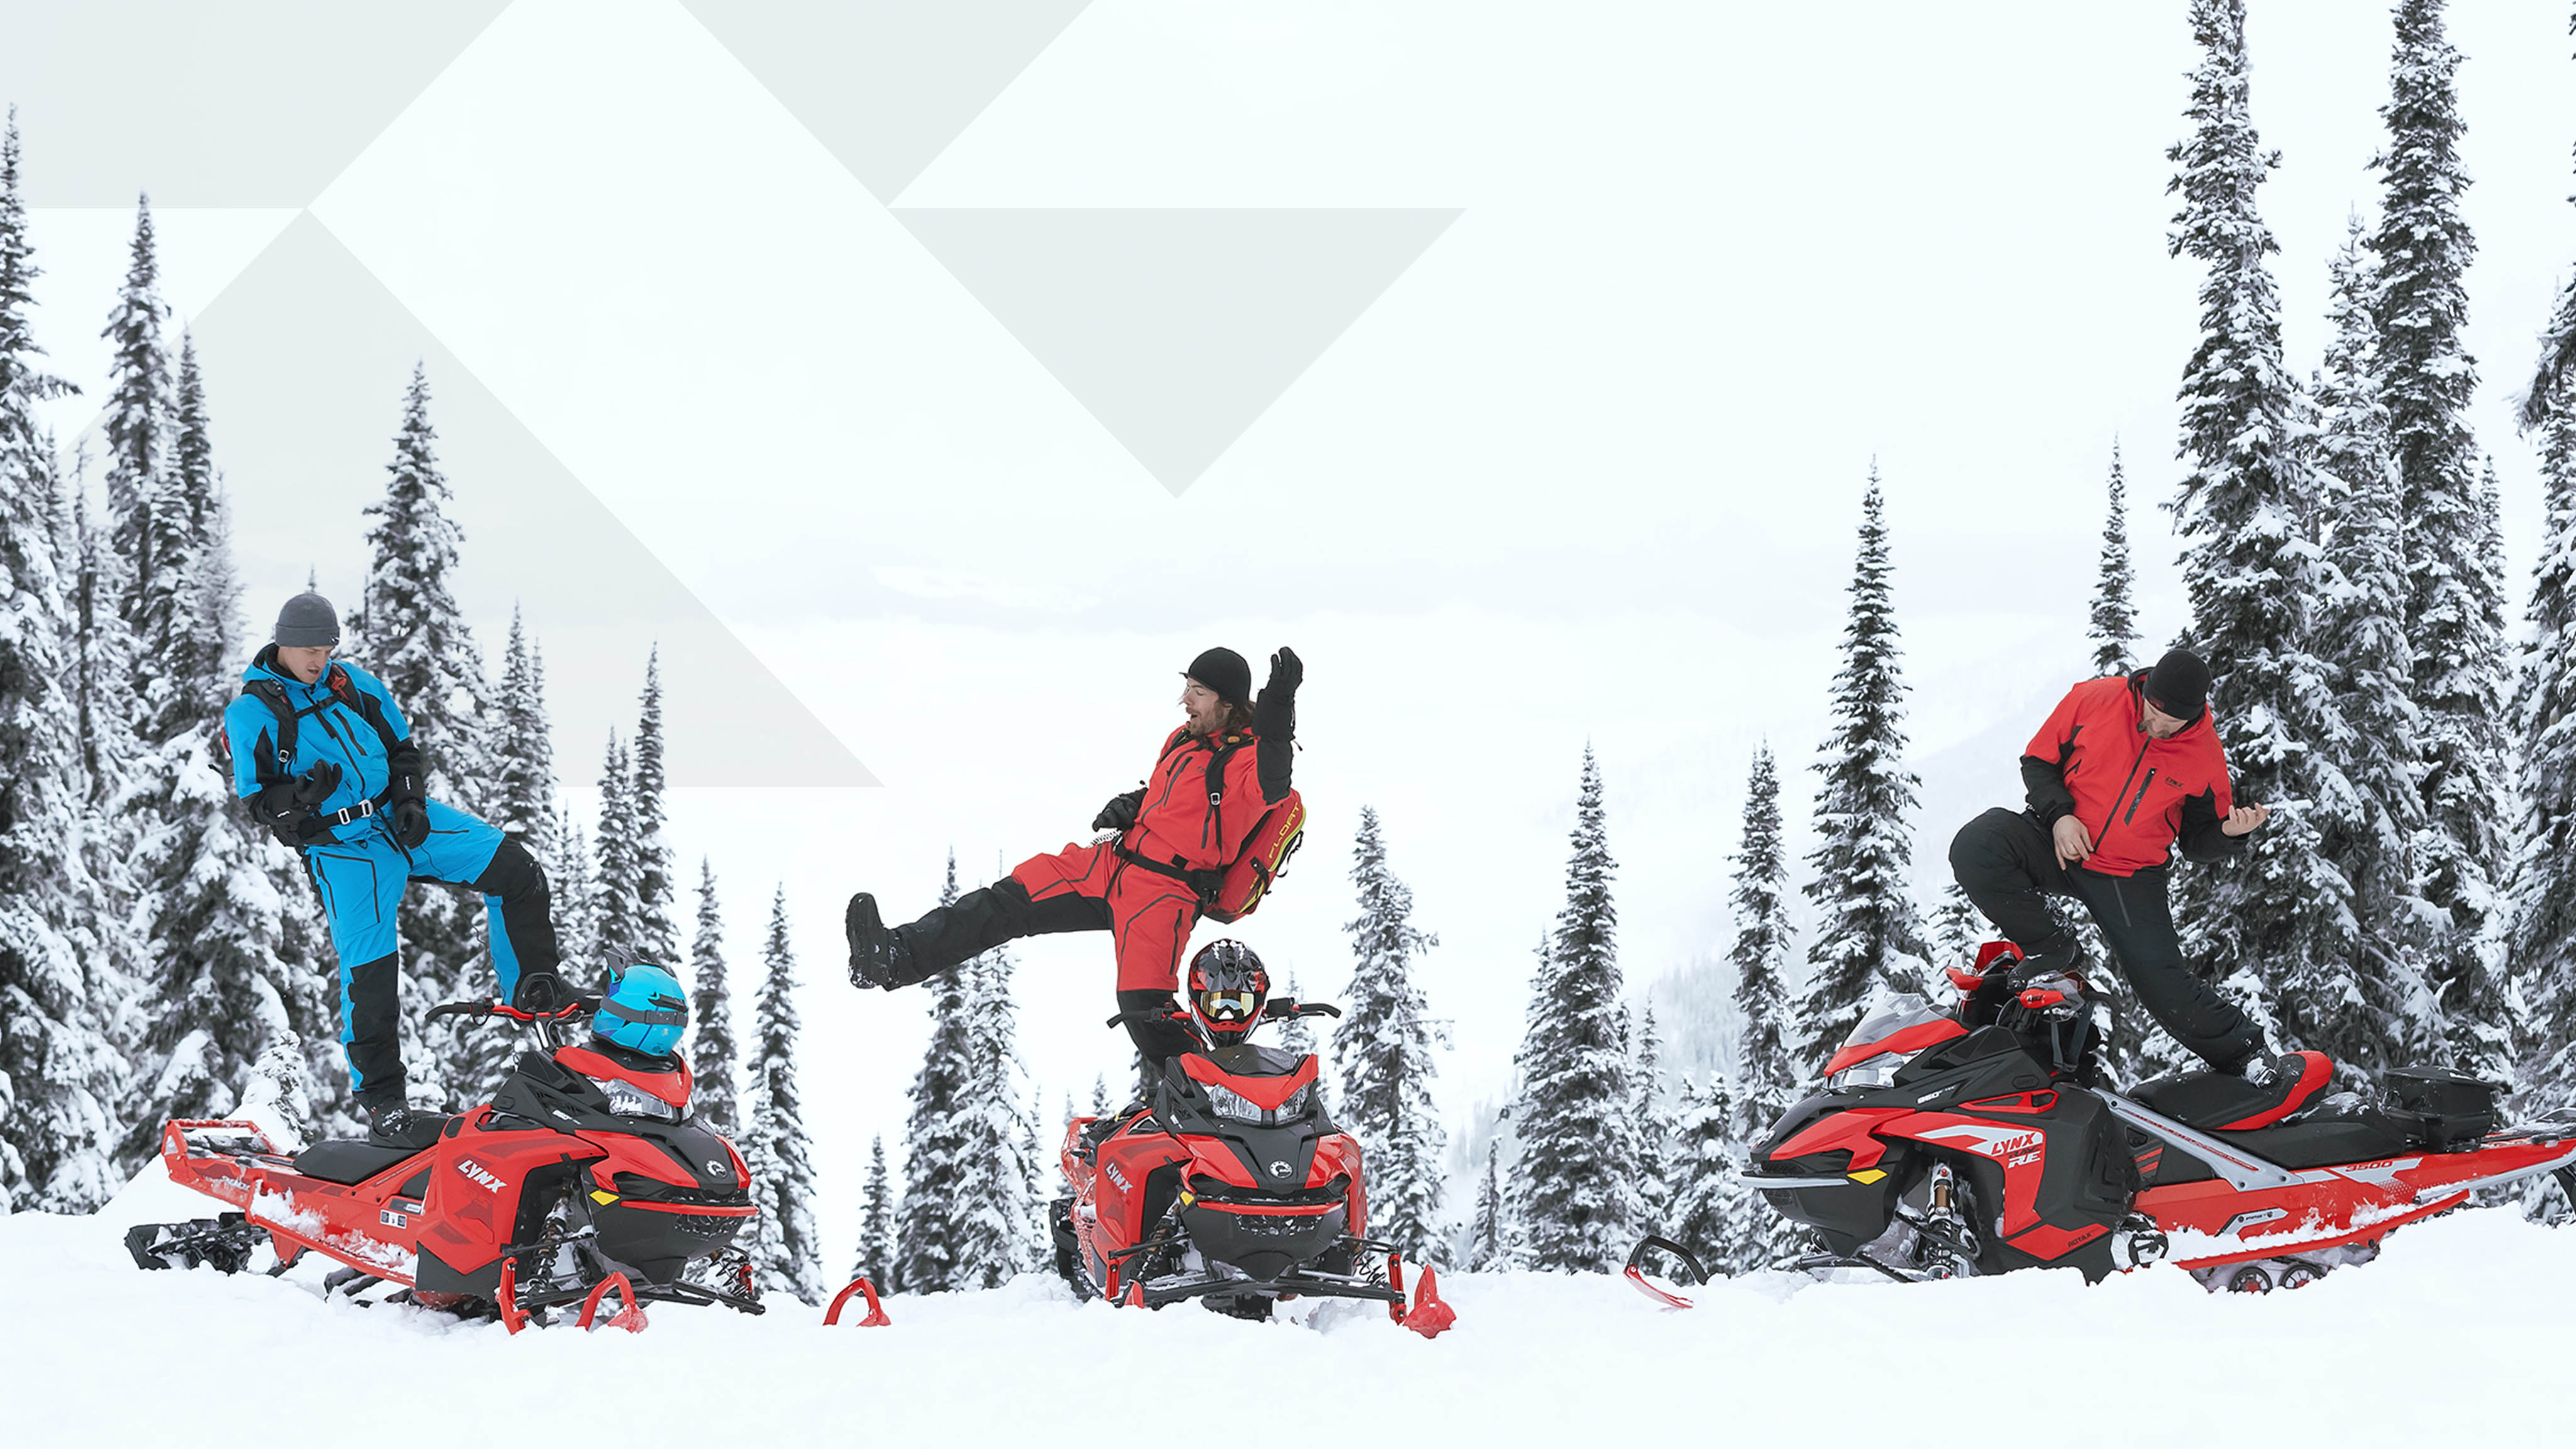 3 Man dancing on their 2022 Lynx snowmobile